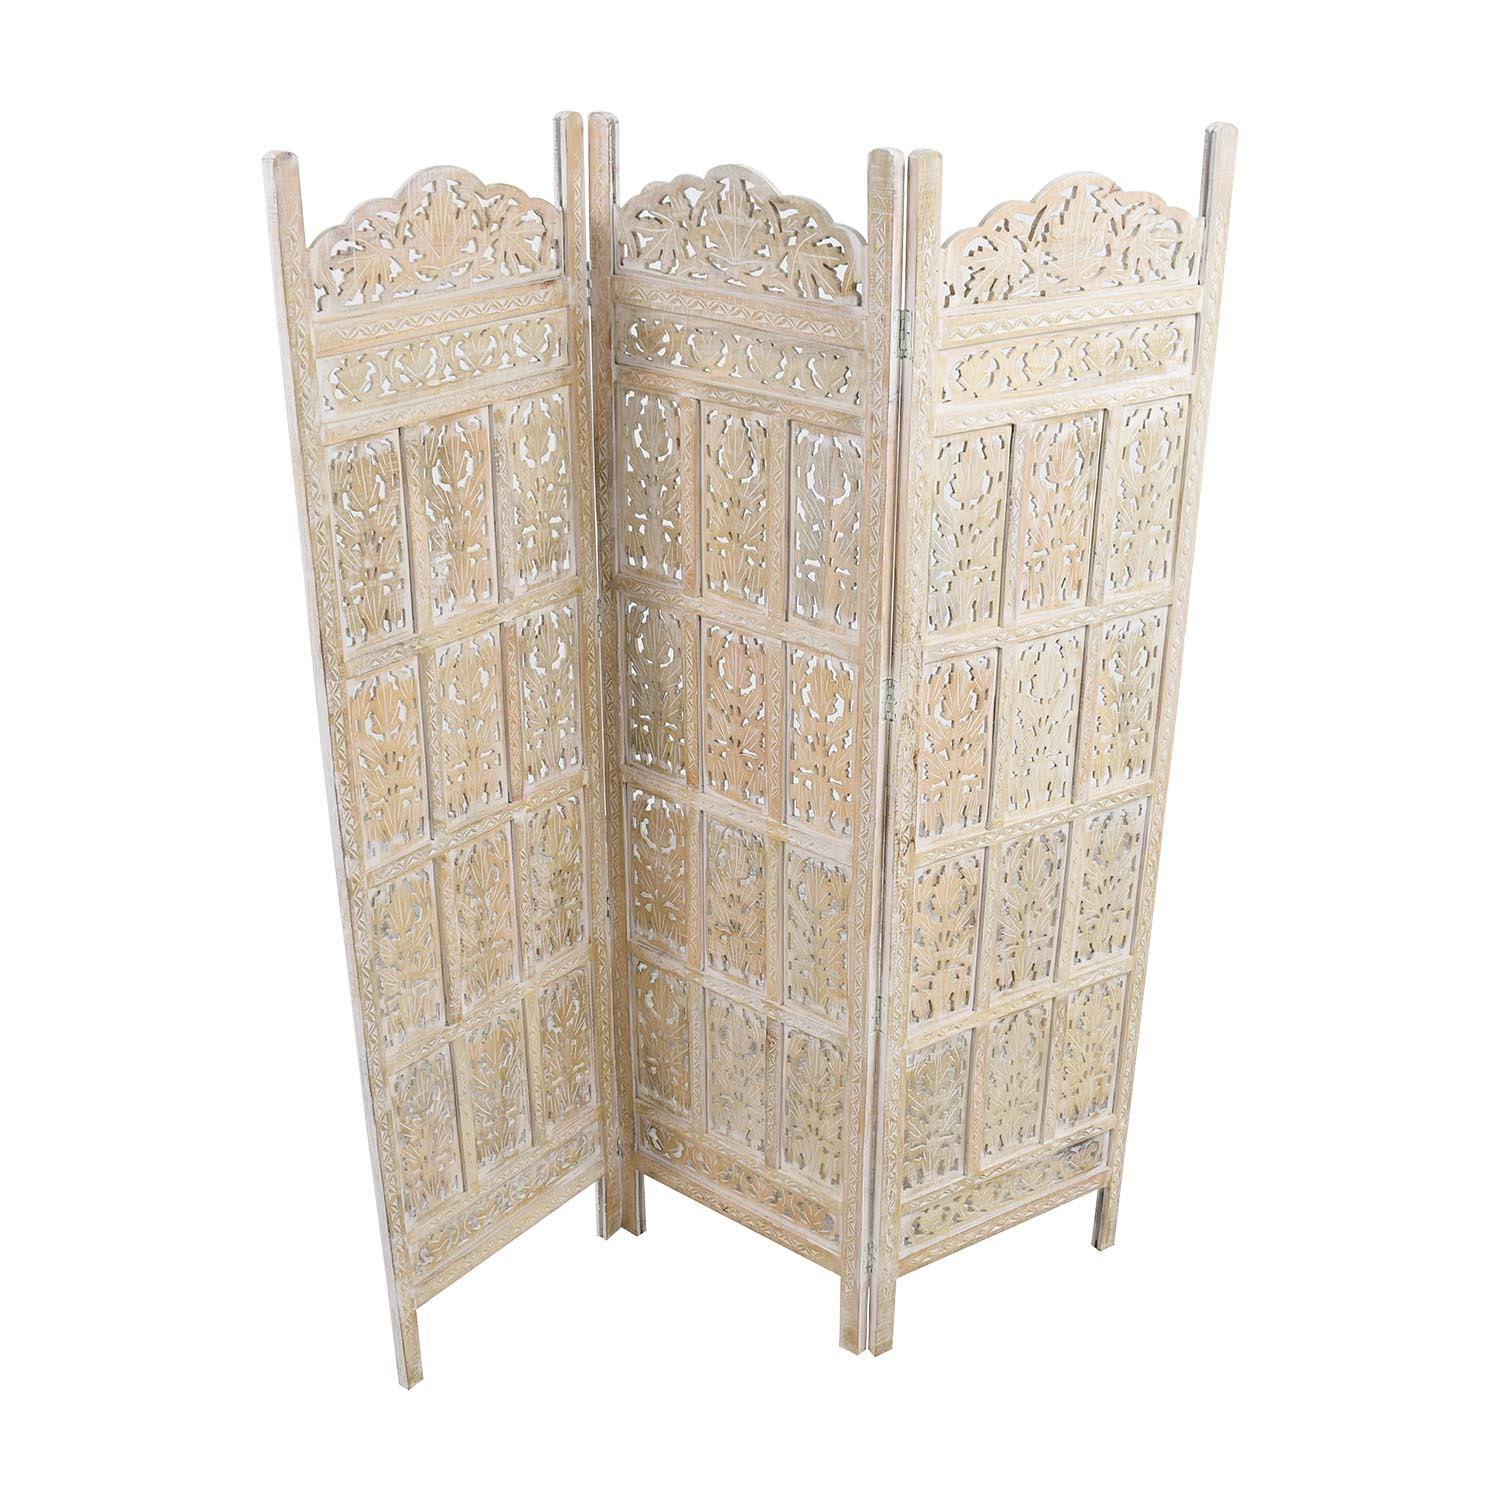 Ornate Screen Divider dimensions